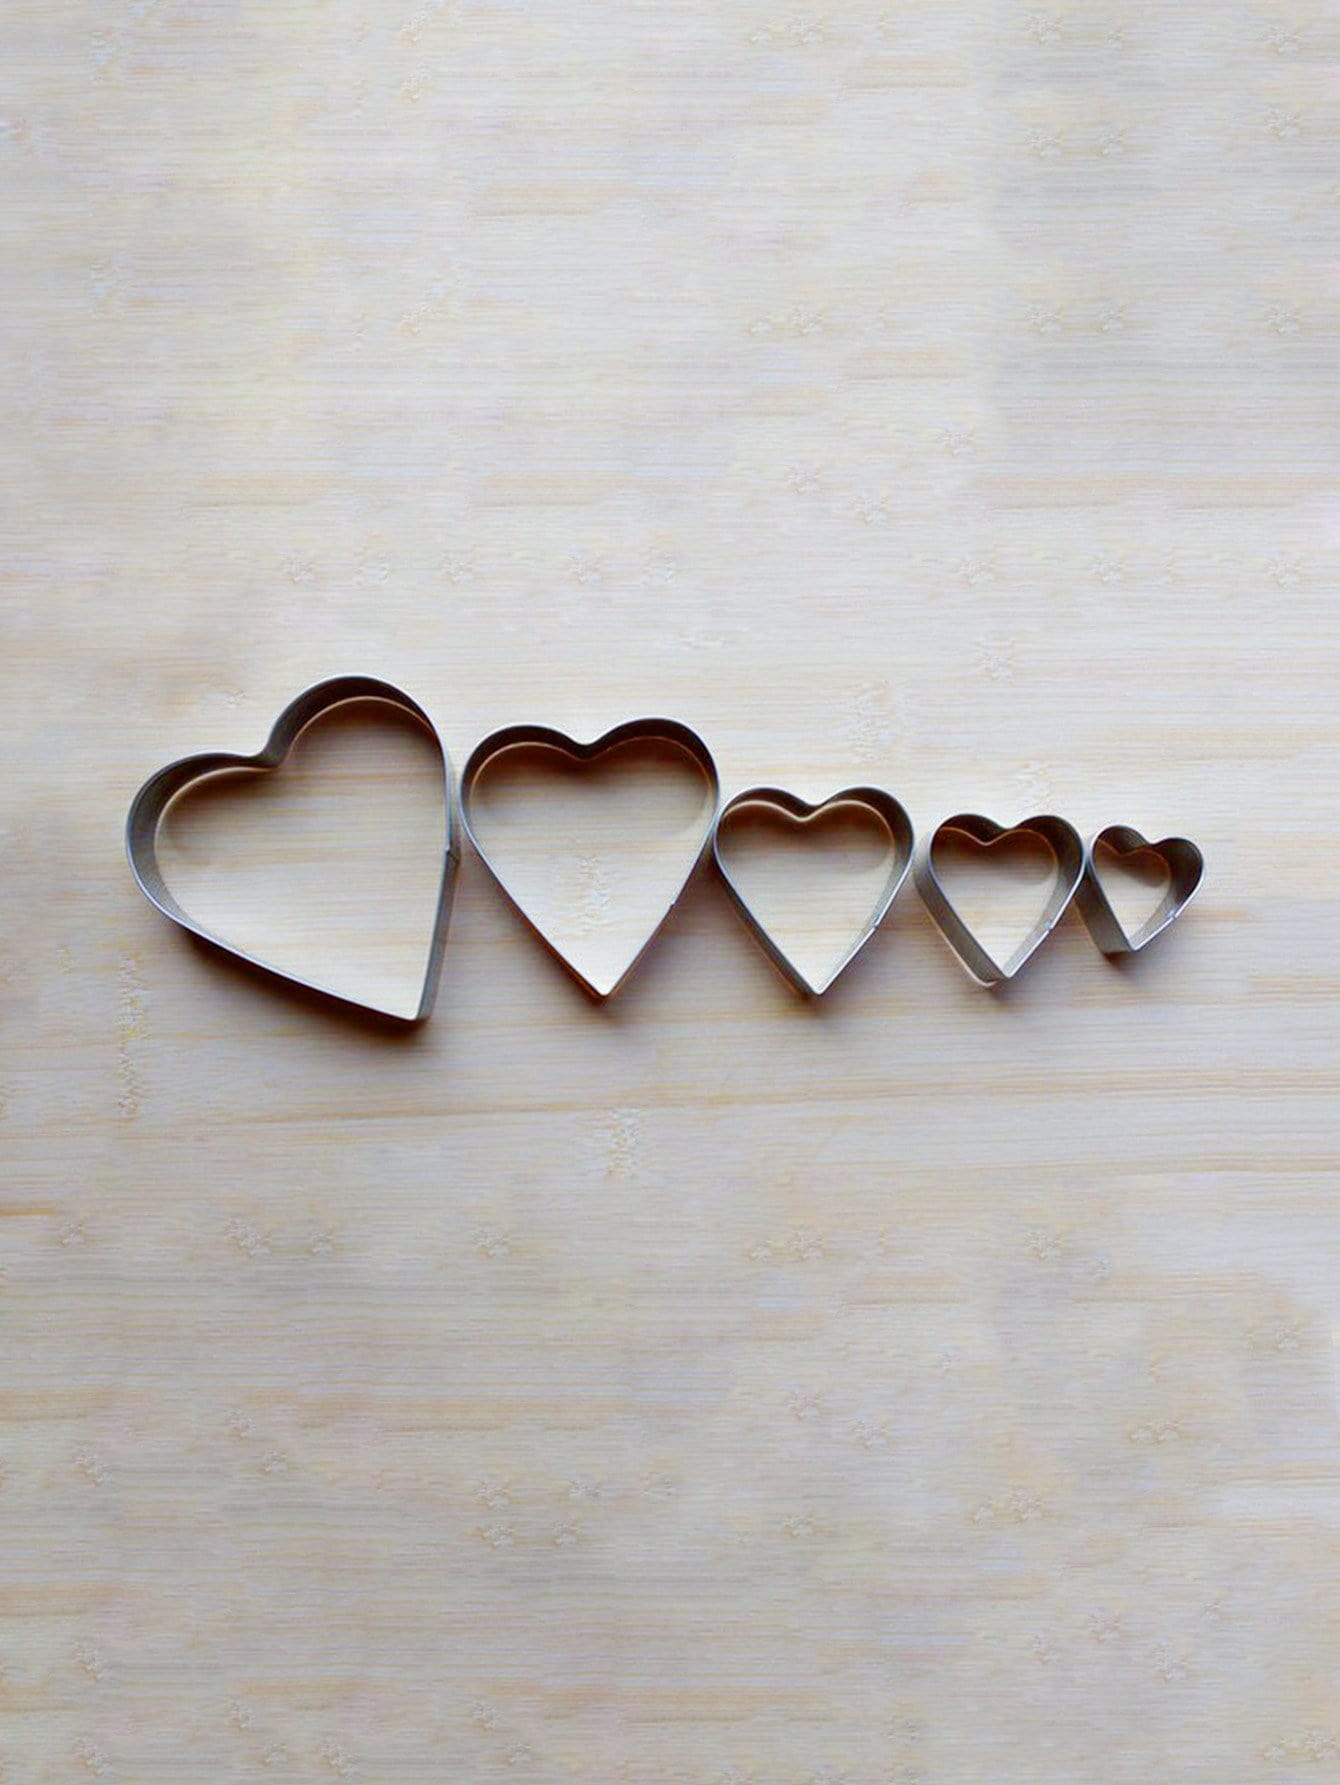 Stainless Steel Heart Cookie Cutter 5pcs stainless steel abs chrysanthemum circle shaped spring cookie cutter green silver